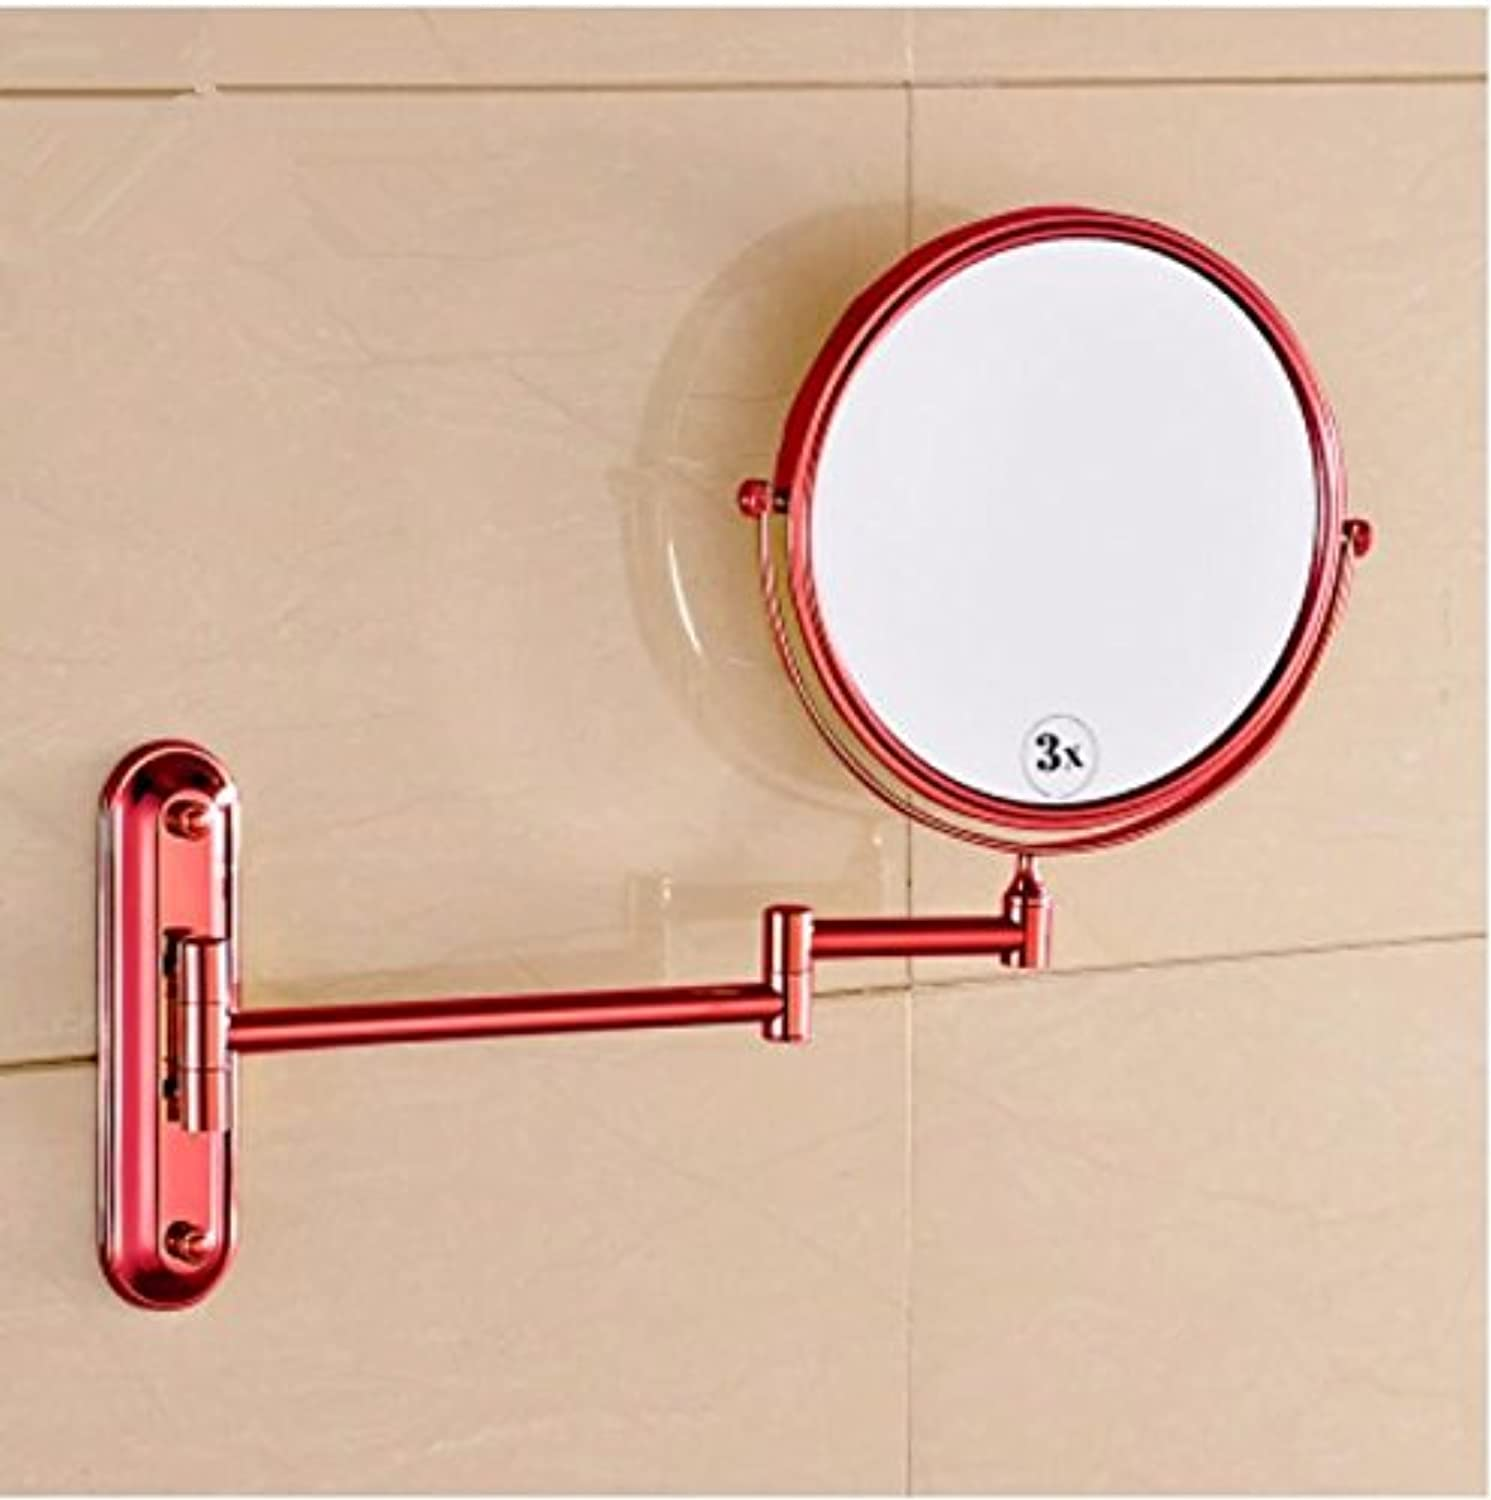 gold antique bathroom mirror wall mount folding mirror double-sided makeup mirror telescopic mirror-8 inch pink-gold mirror